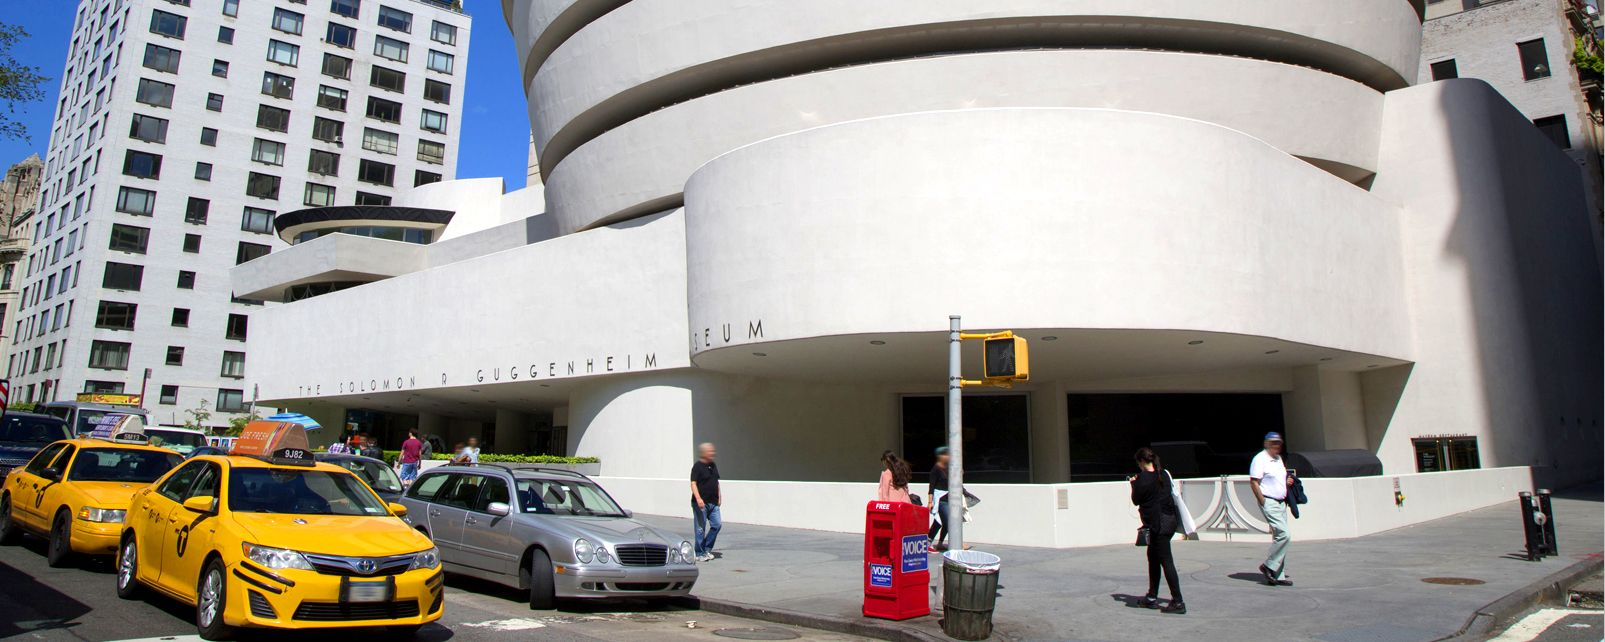 Solomon R. Guggenheim Museum , Inside the Guggenheim Museum, New York , United States of America